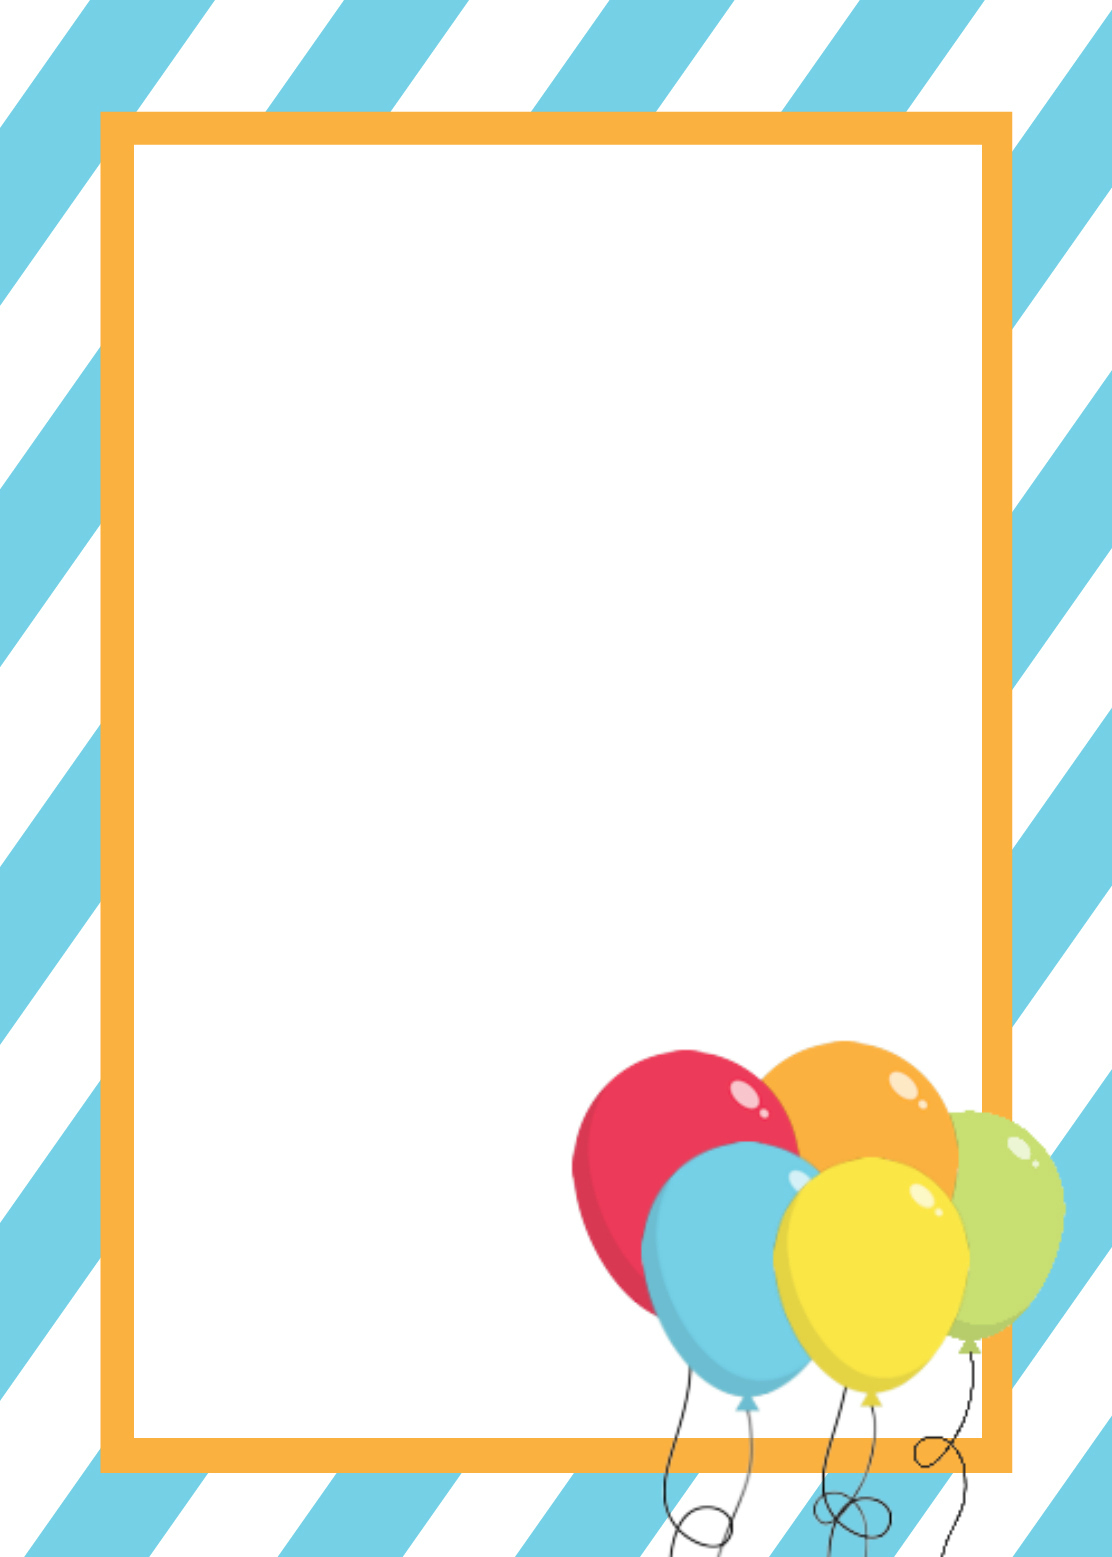 Free Printable Birthday Invitation Templates - Birthday party invitation cards to print